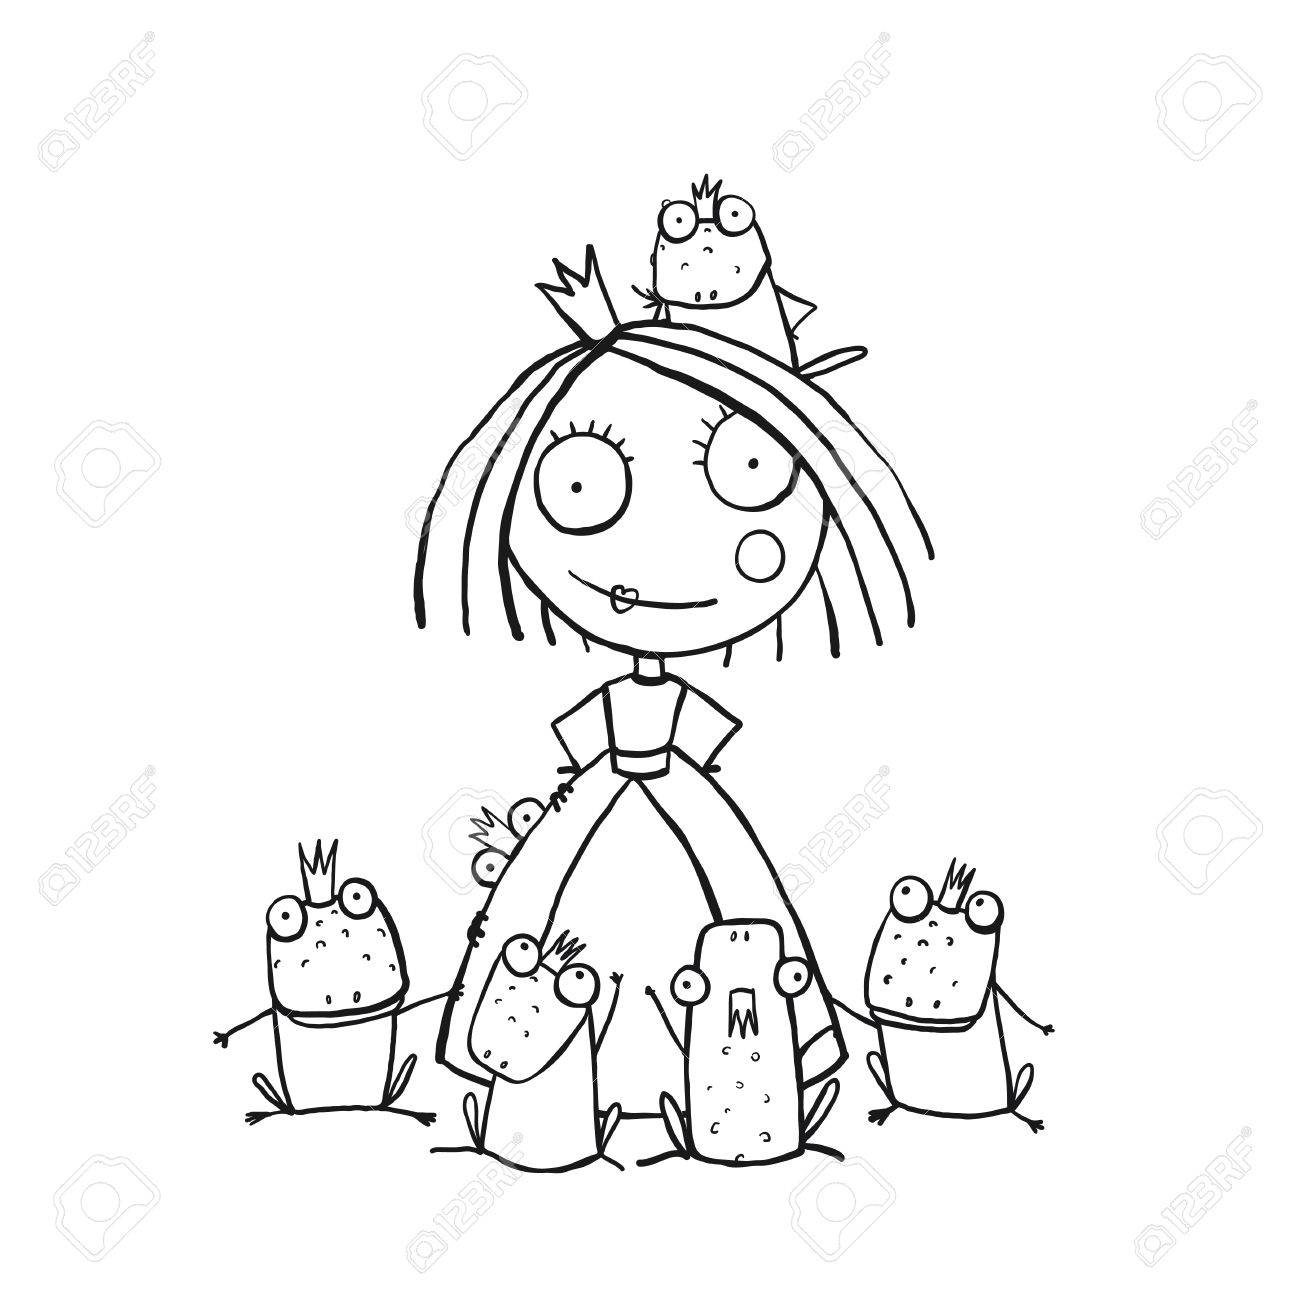 Princess And Many Prince Frogs Portrait Coloring Page Fun Childish Hand Drawn Outline Illustration For